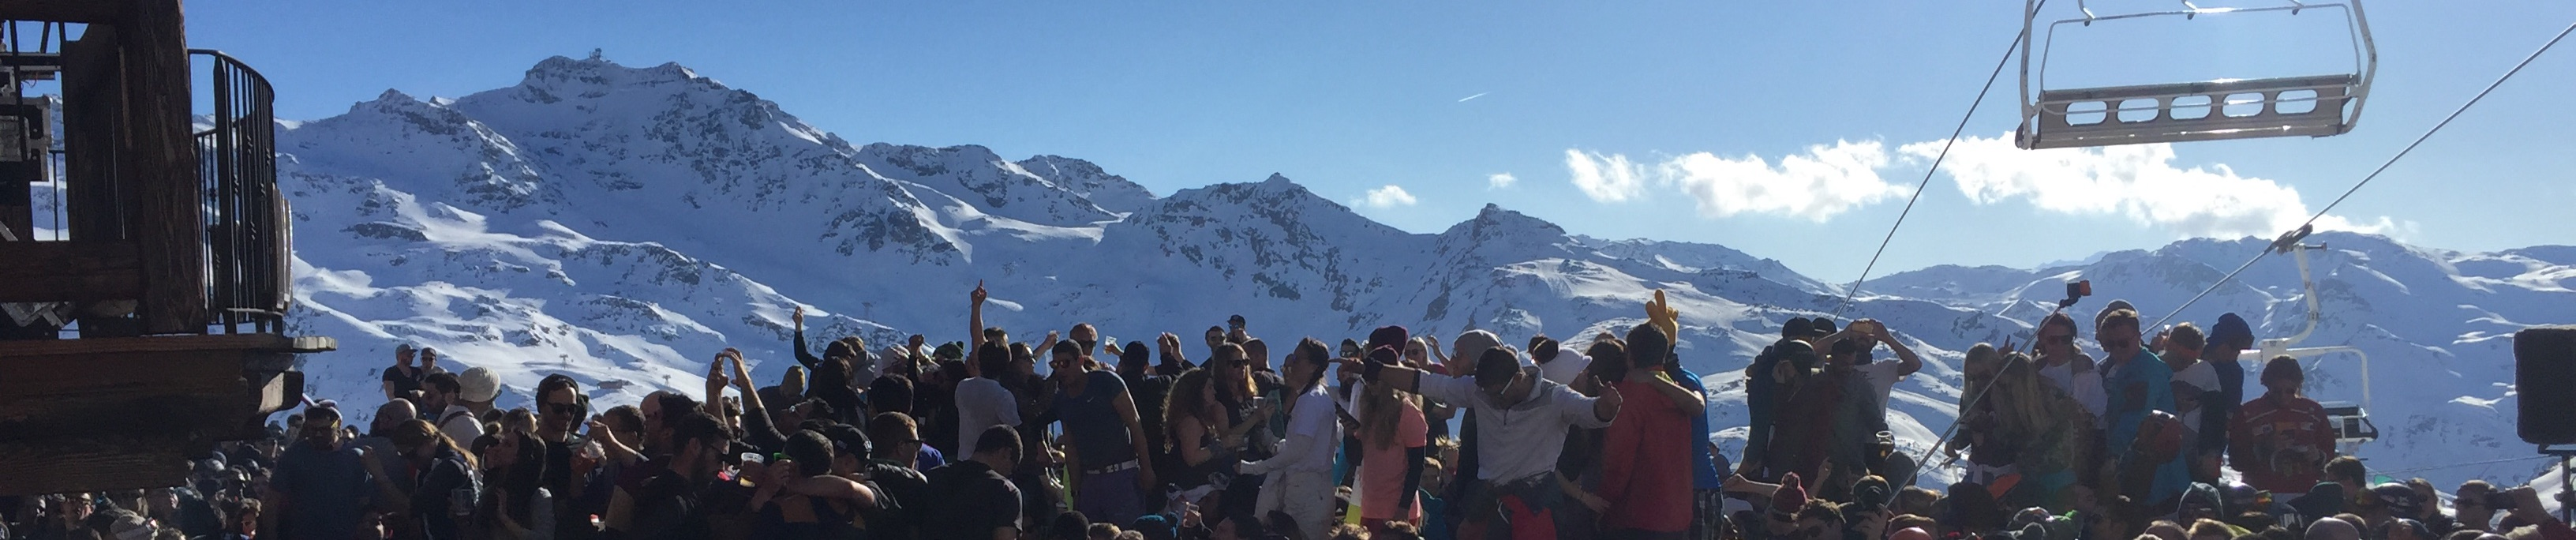 La Folie Douce Val Thorens Free Listening On Soundcloud